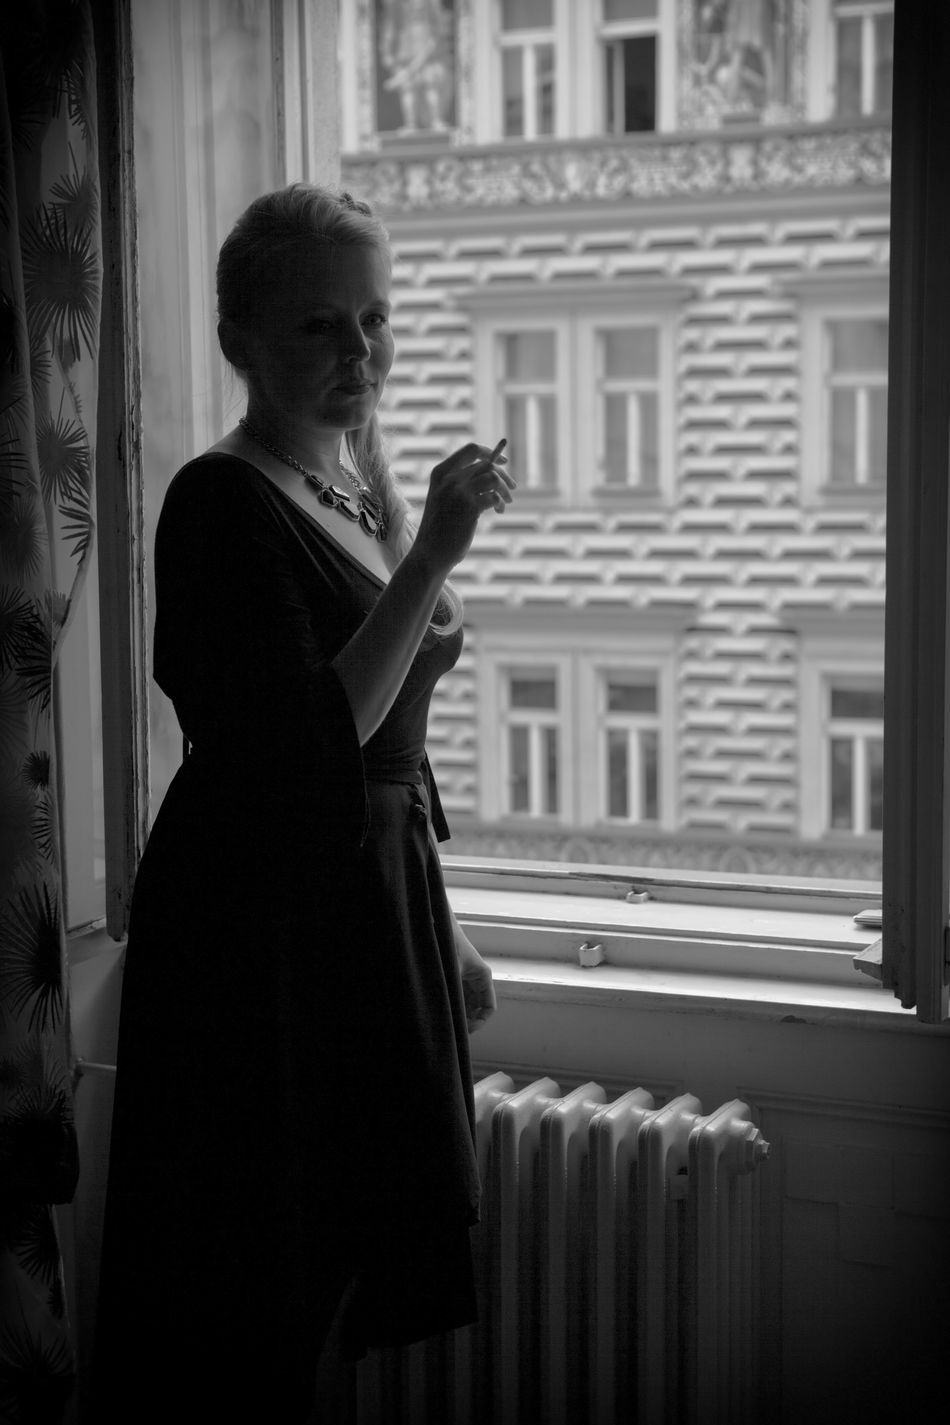 Black & White Black And White Femme Fatale In The Window Moment Person Portrait Of A Woman Smoker Smoking Woman